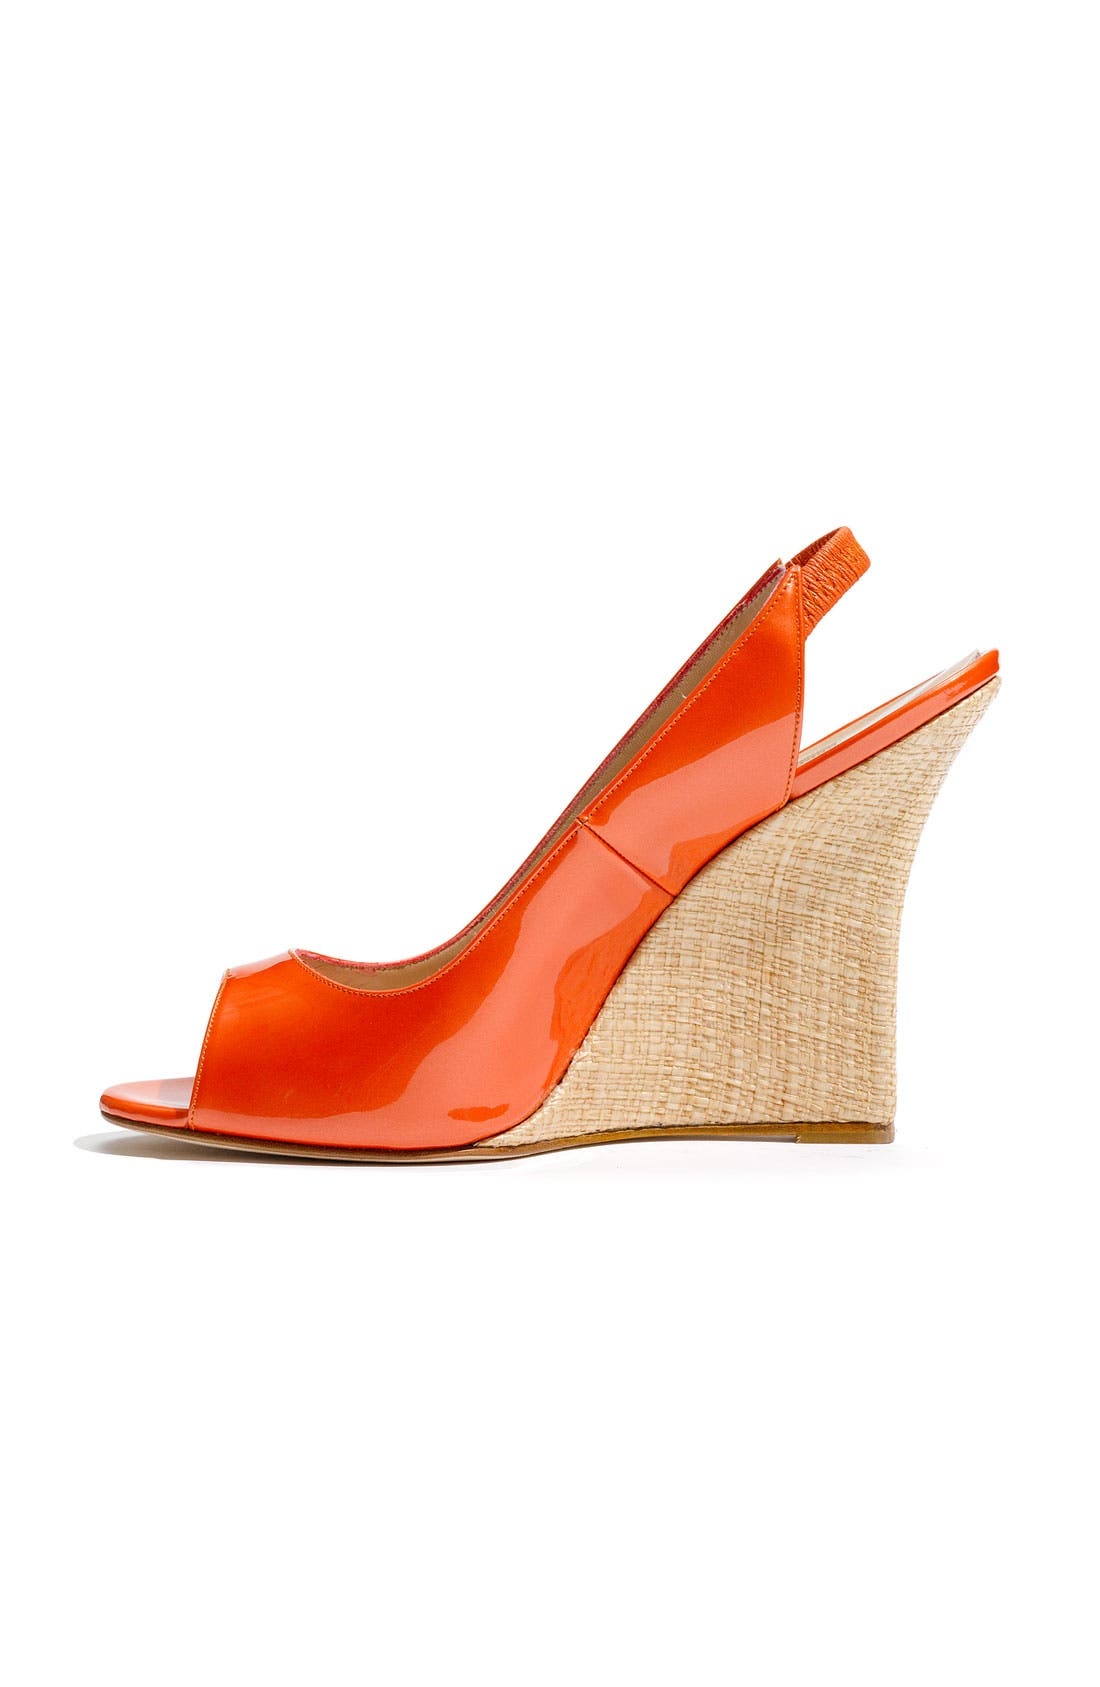 'Maniapla' Slingback Wedge,                             Alternate thumbnail 3, color,